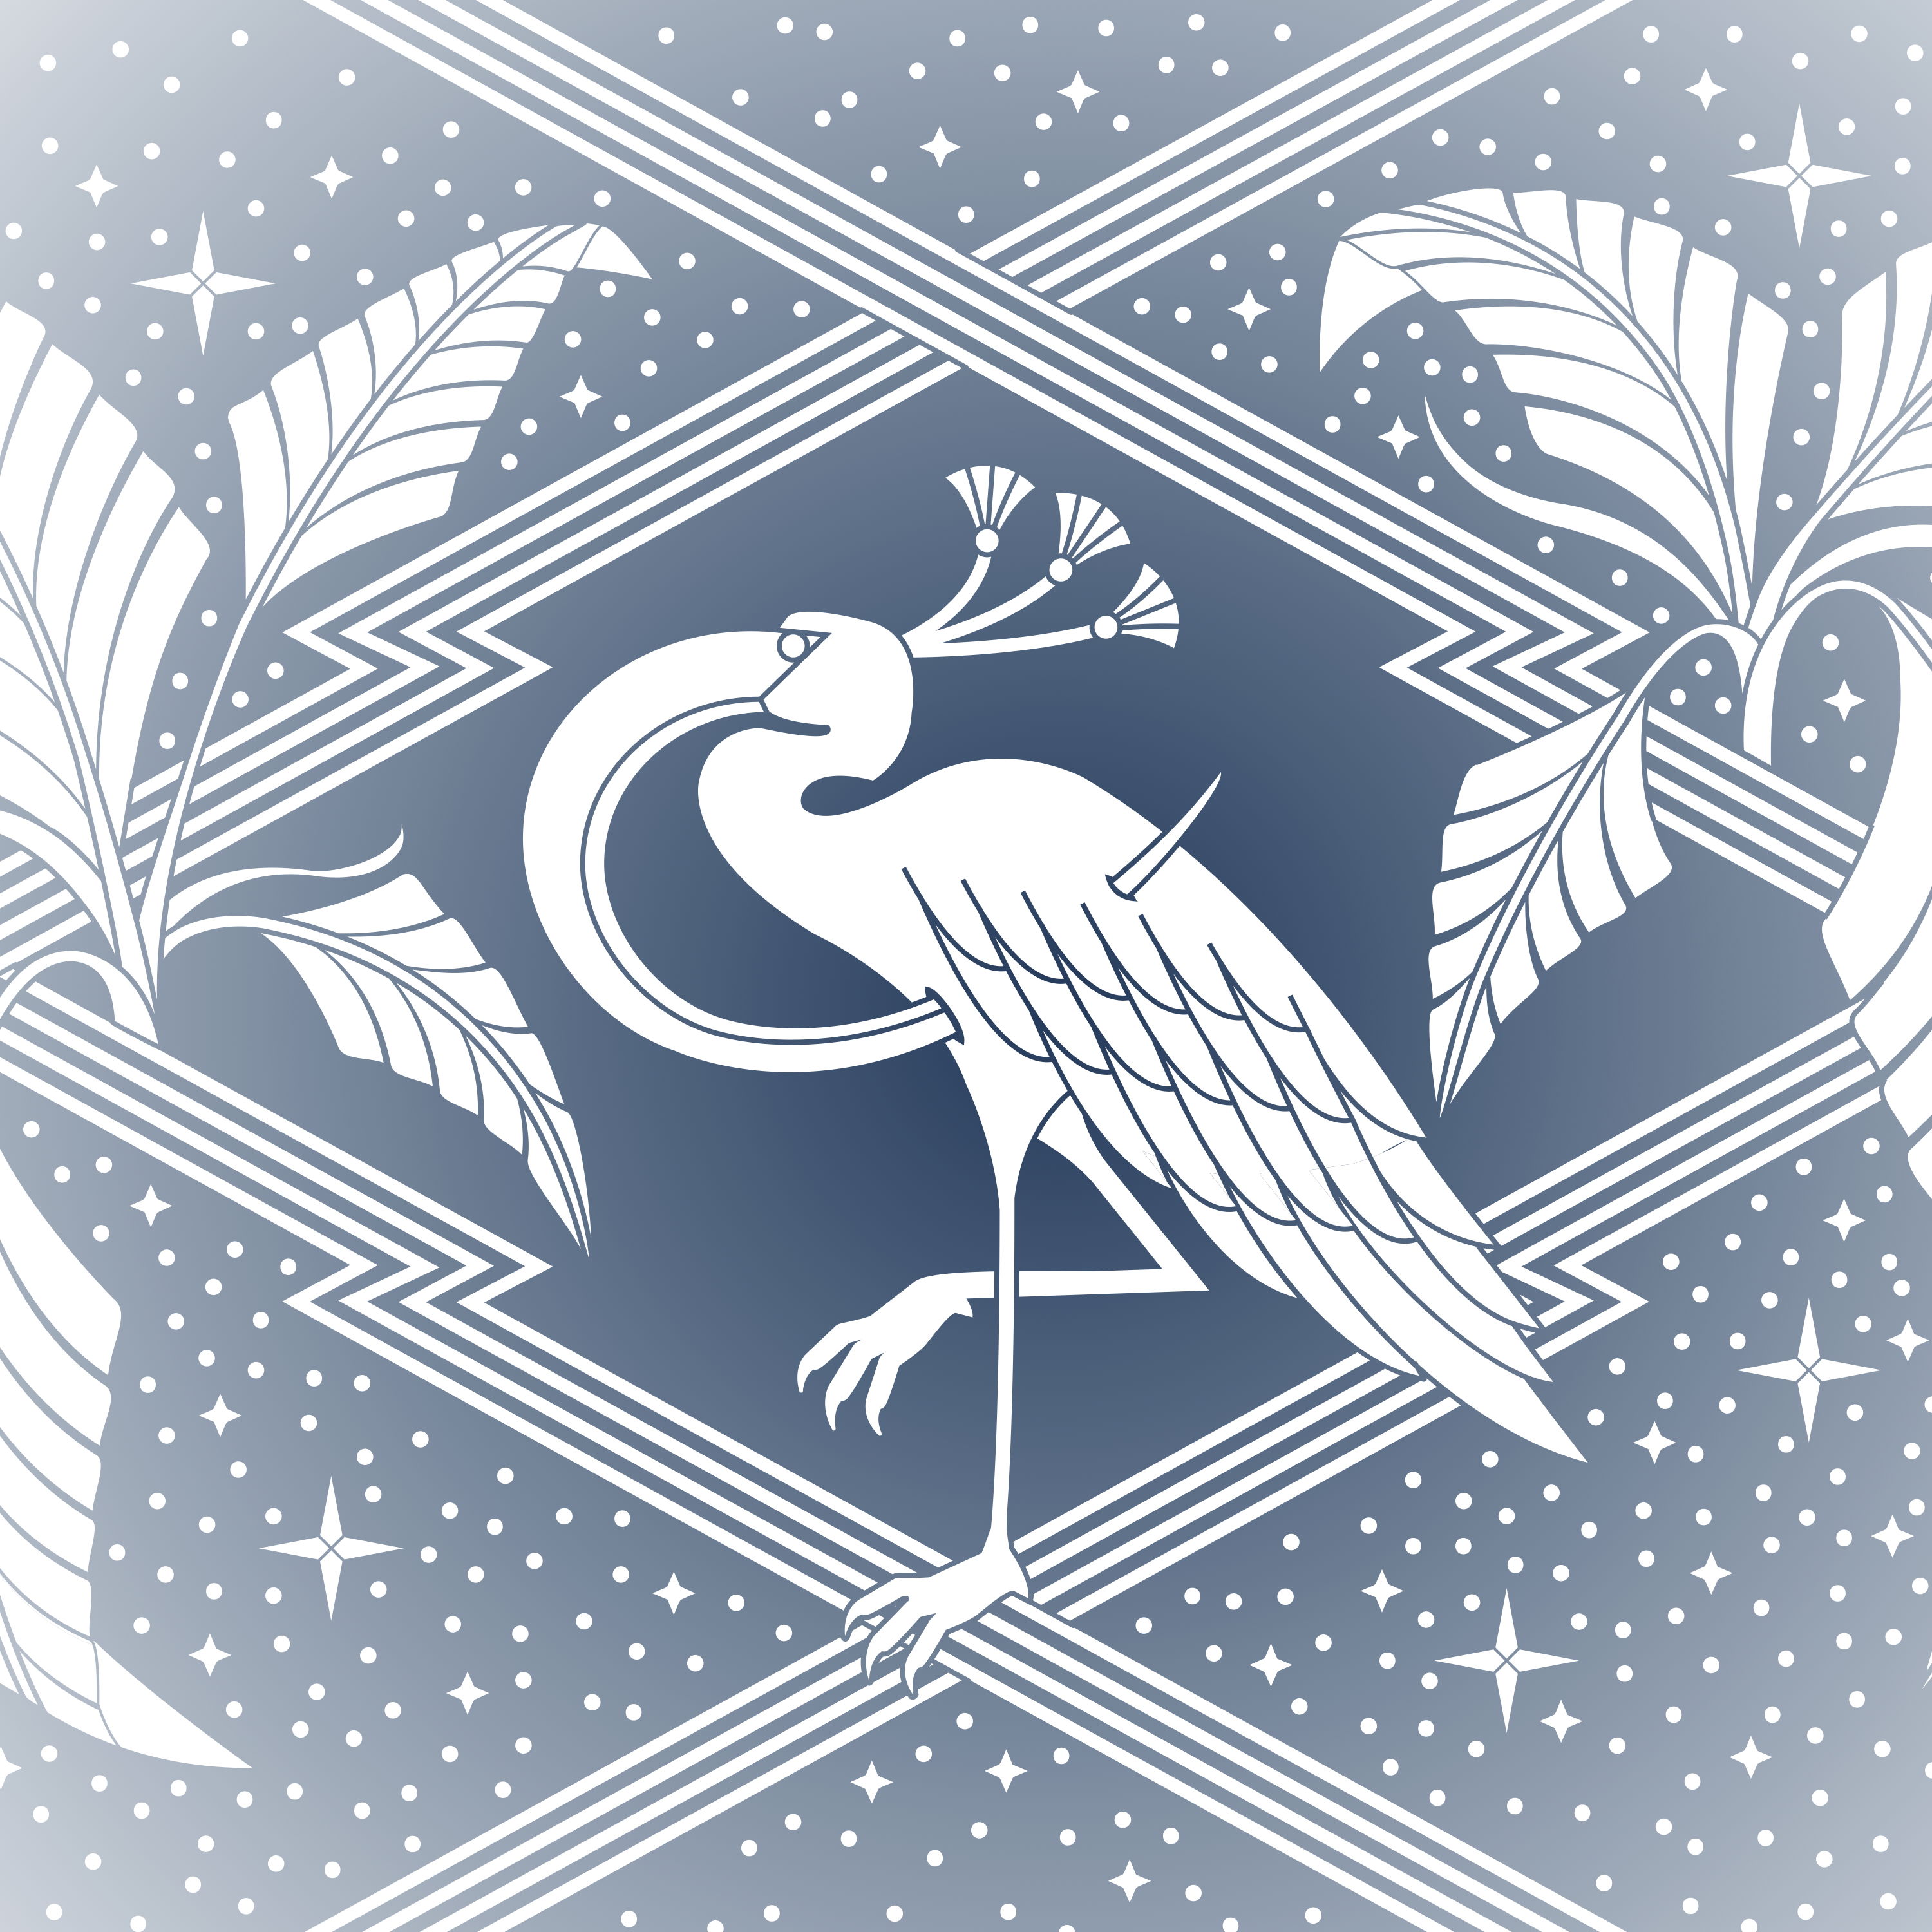 A design in blue and white. The design features a large bird with an arch shaped beak standing on one leg. Around the bird are some stars and dots, thick straight lines, and plants.